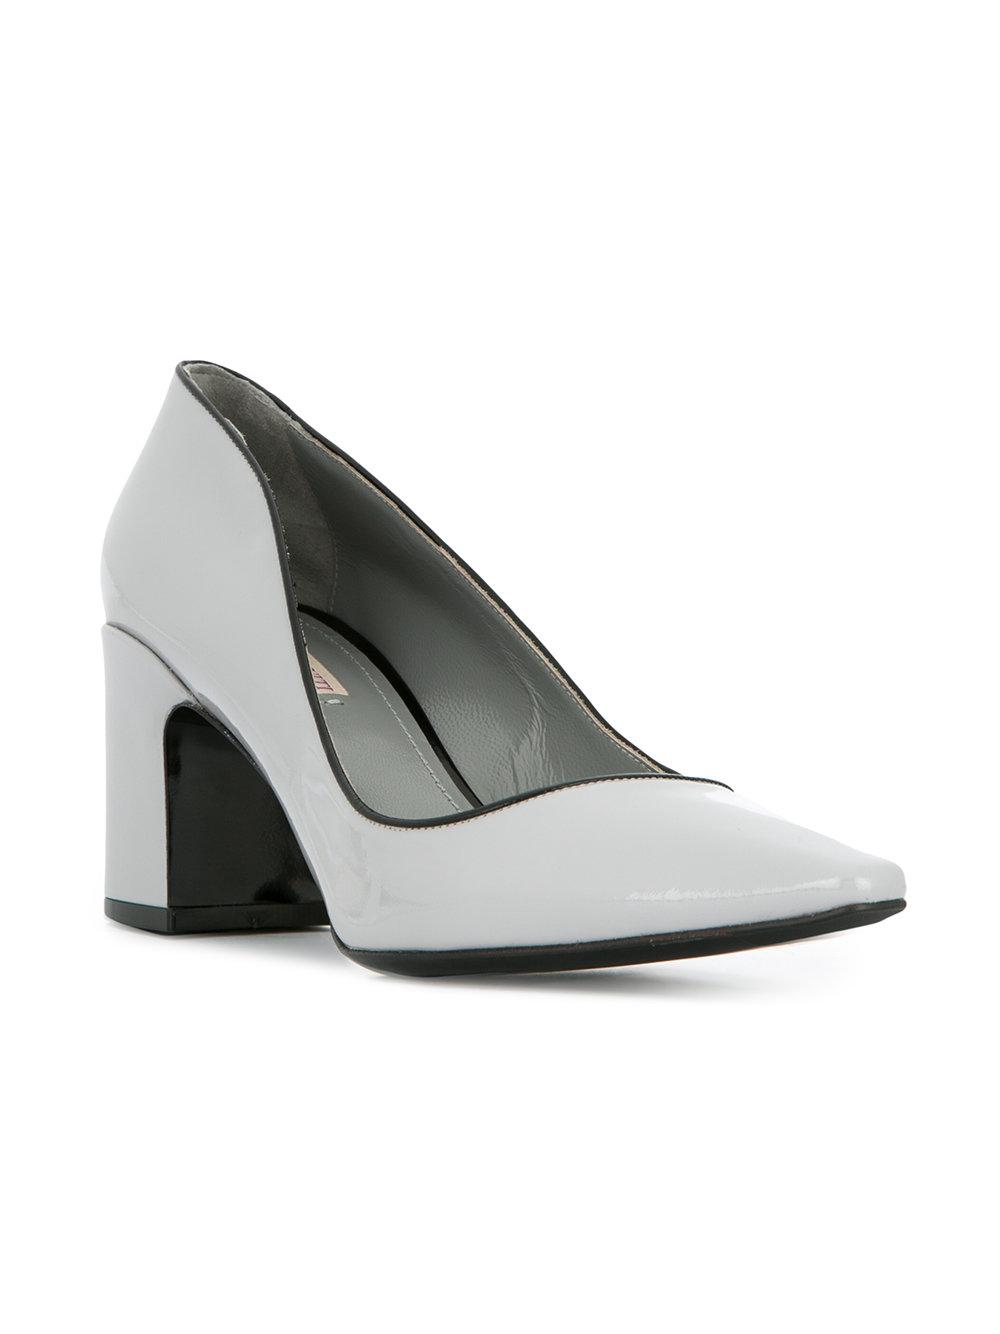 Fabrizio Viti chunky heel piped opening pumps discount visa payment cheap Manchester sale with paypal buy cheap perfect wHYr2oq